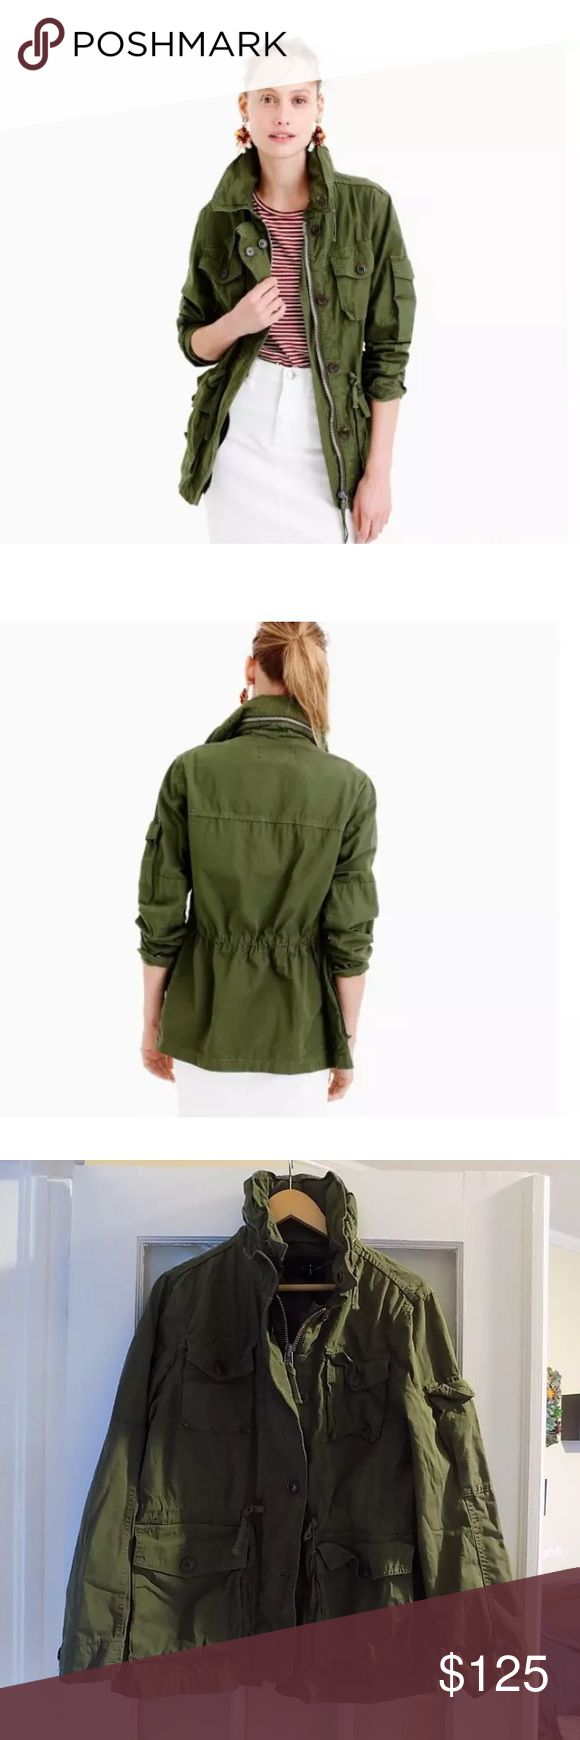 J. Crew Mechanic Hillside Green Military Jacket This jacket is brand new with tags from J. Crew. I have to narrow down my green jacket collection and never got a chance to wear this one so I must say goodbye.... it's garment dyed, broken in and built to handle everything from tailgating to those chilly morning commutes. Cotton. Standing collar with a zip in hood. Hidden zip with button closure. J. Crew Jackets & Coats Utility Jackets